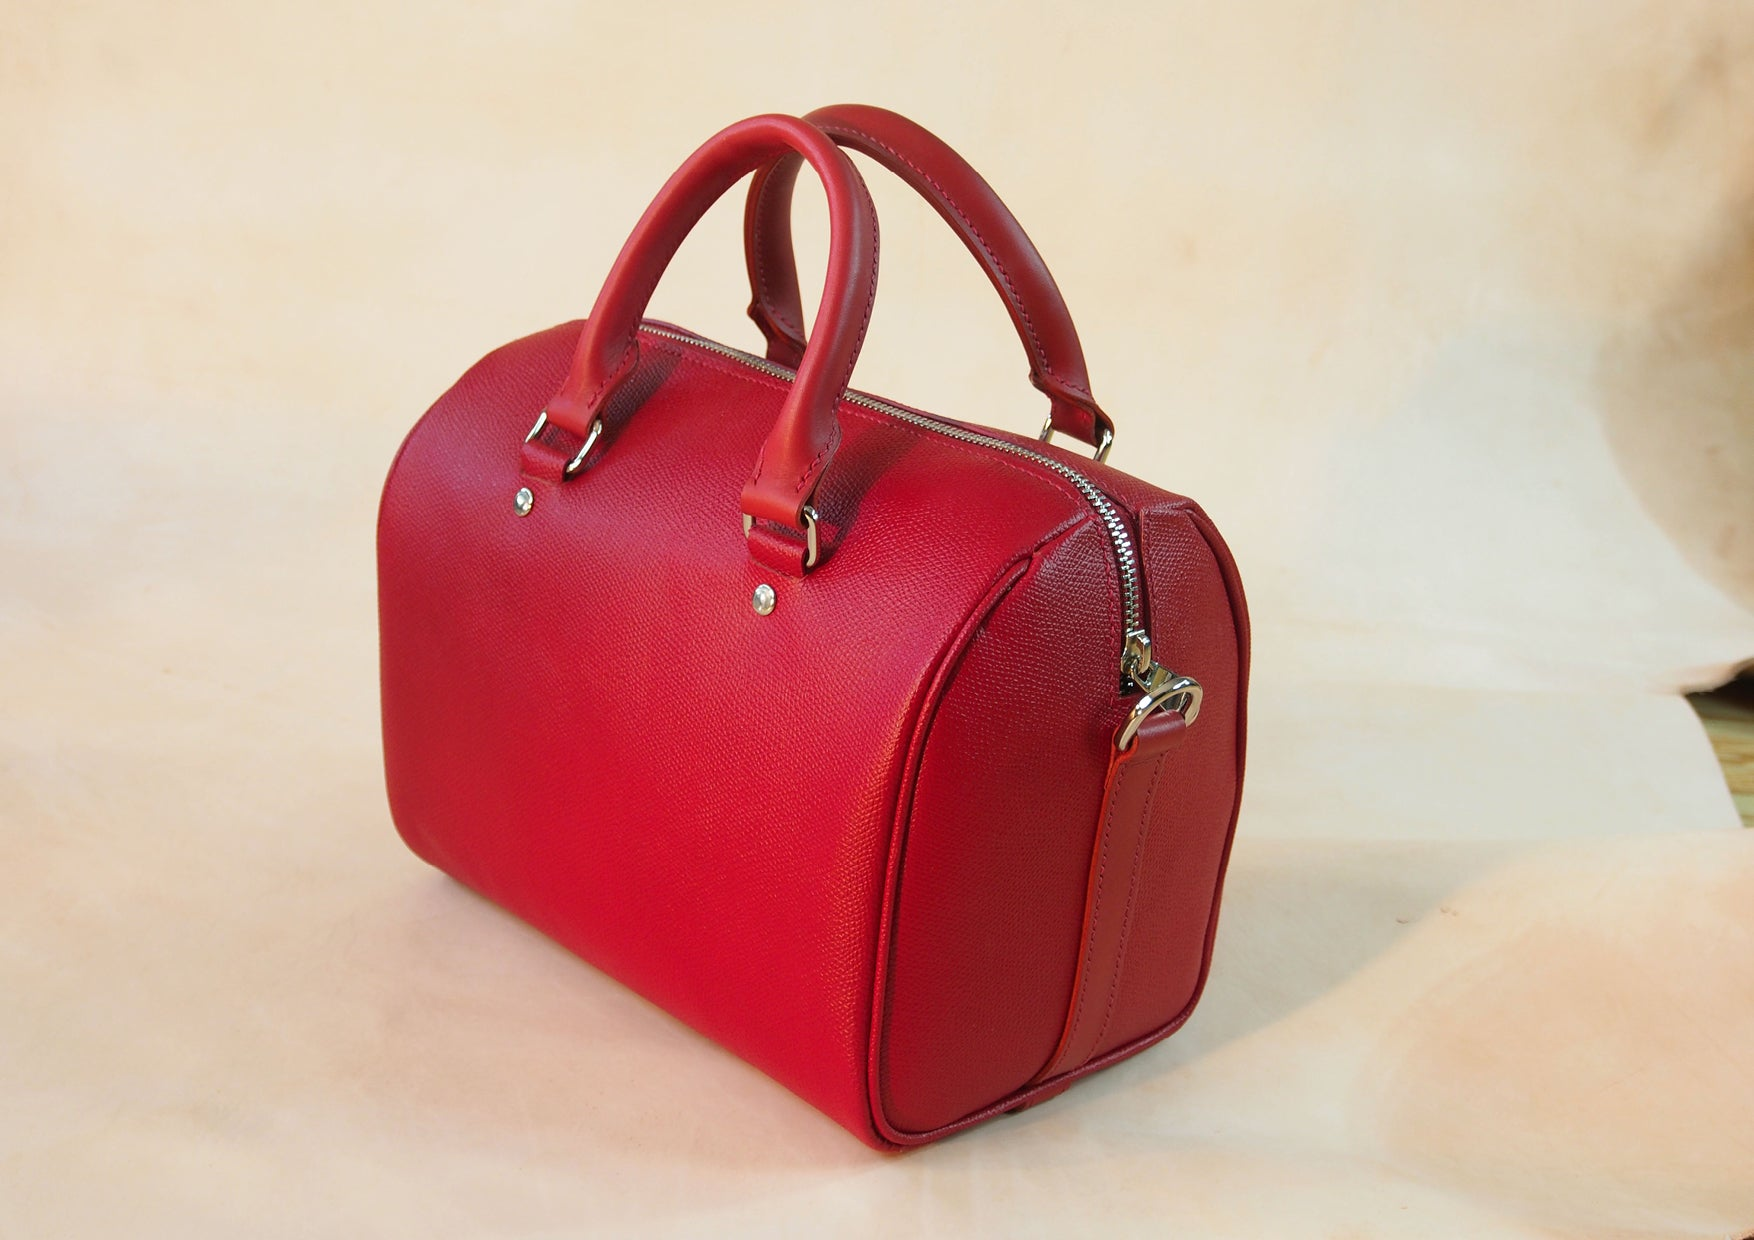 New Leather Bag Pattern/ Speedy Bag Pattern Available